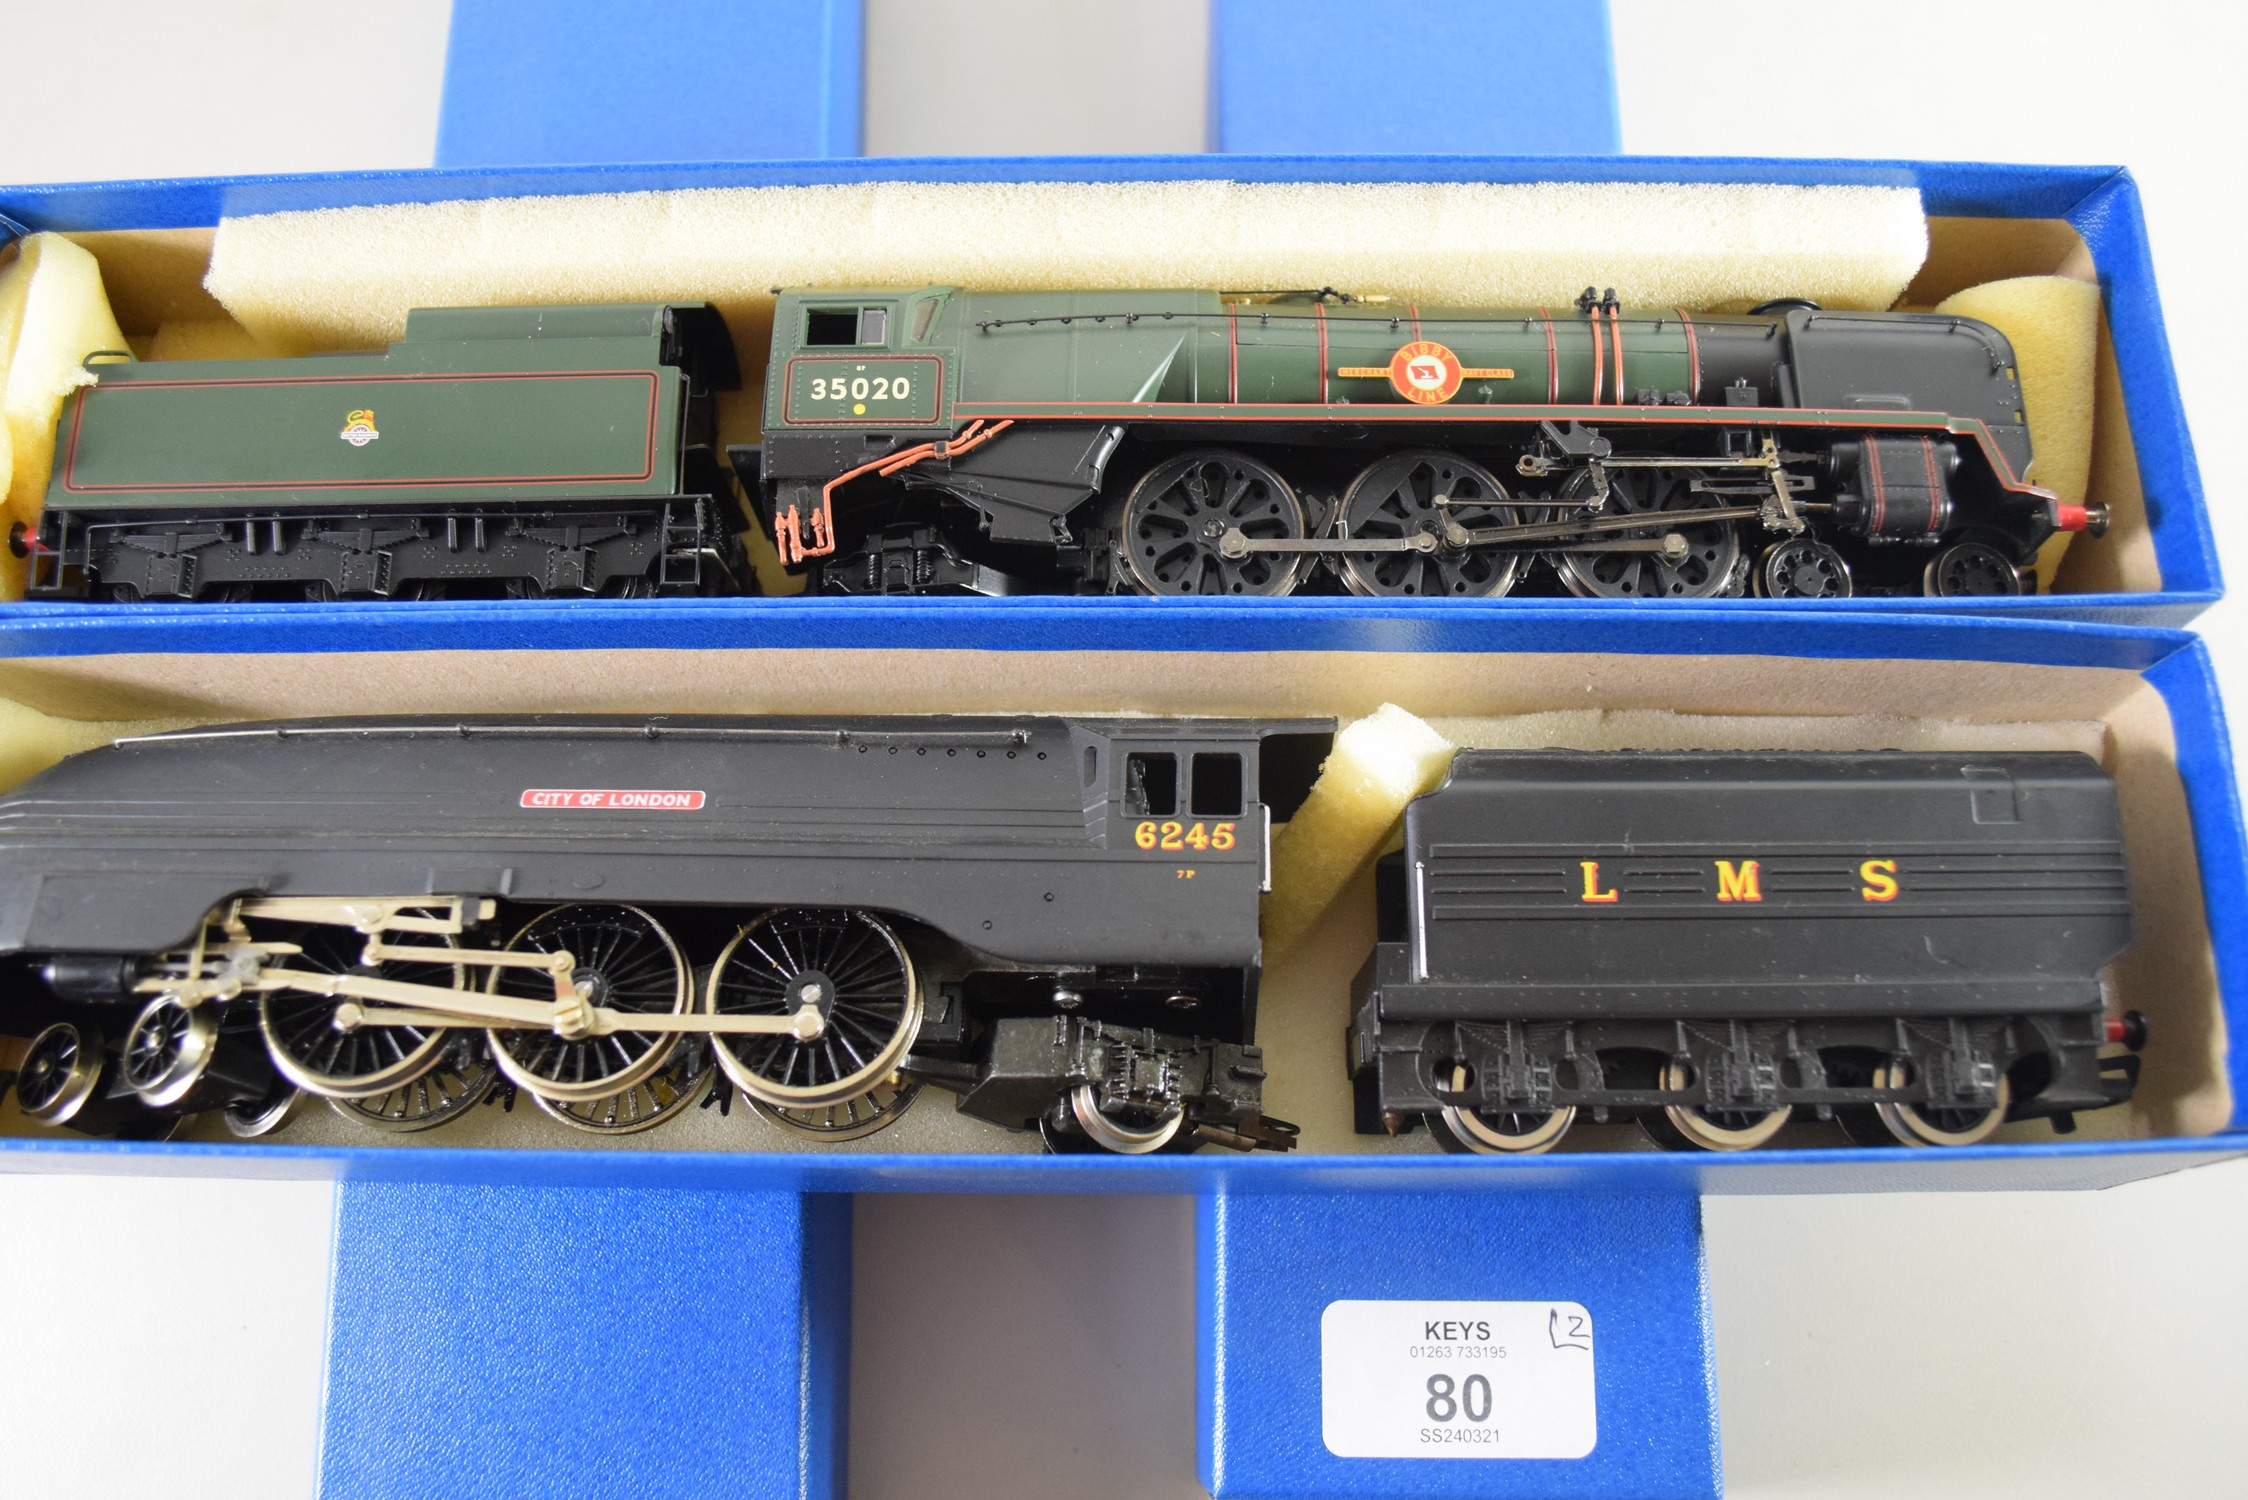 """Hornby Coronation """"City of London"""" locomotive No 6245, together with a Hornby Merchant Navy Class """""""